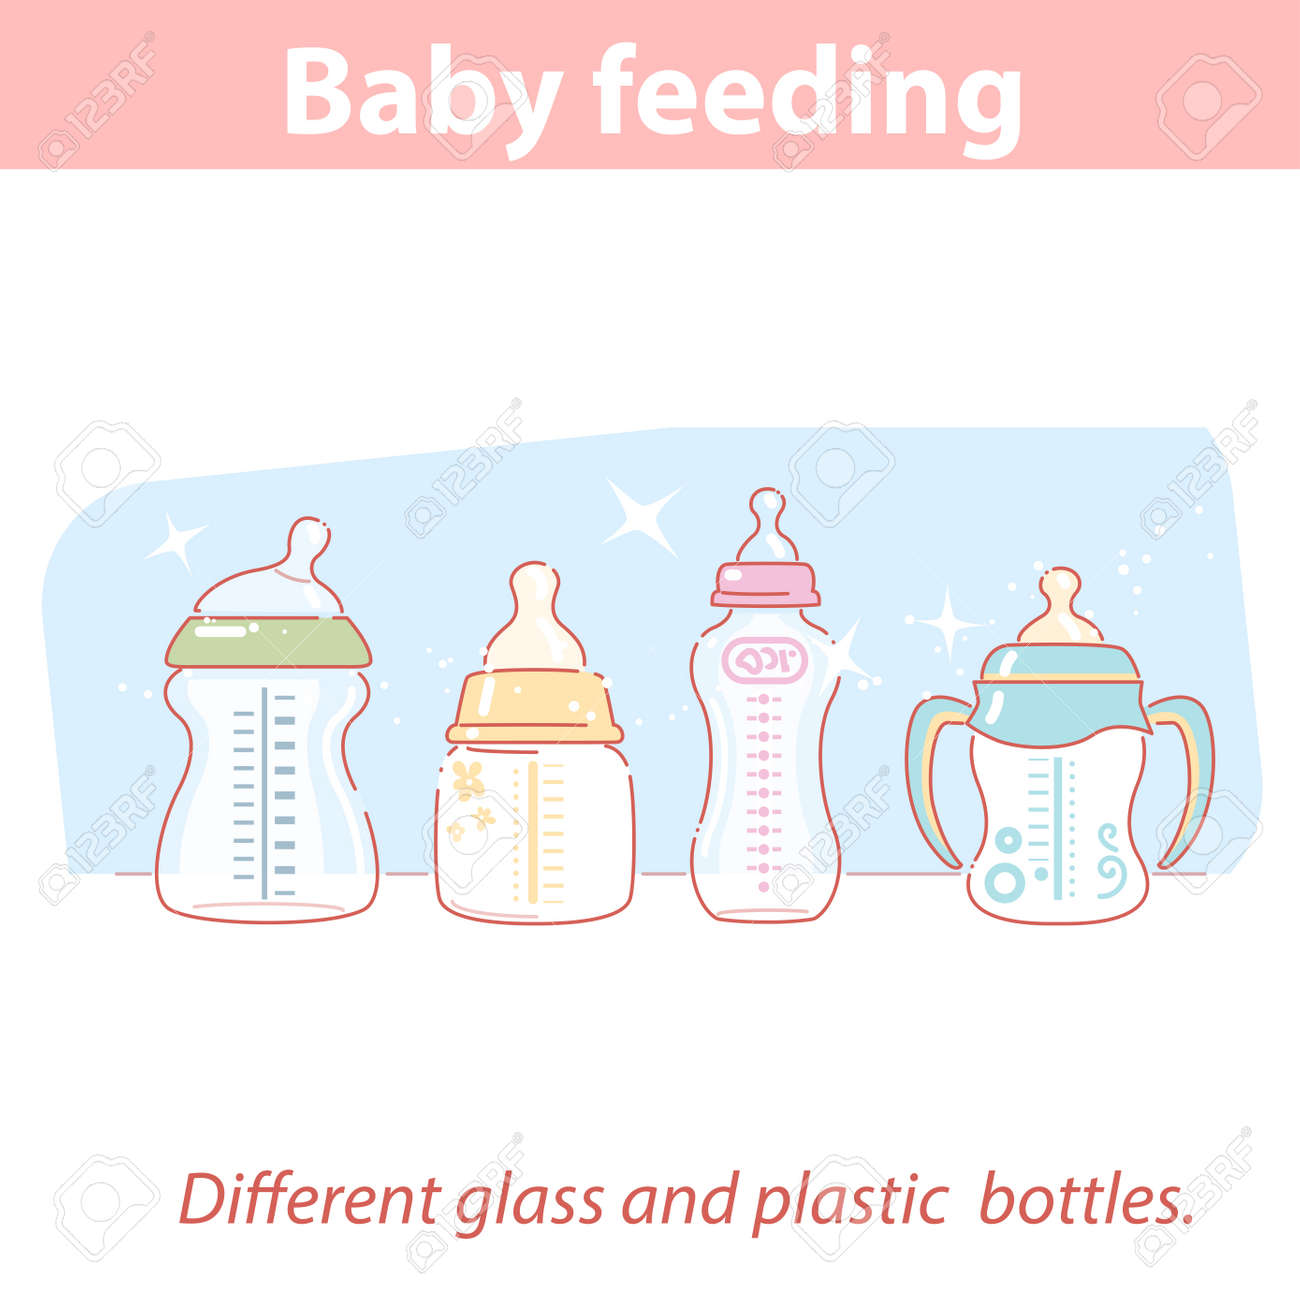 baby feeding. Set of different bottles for baby feeding in row. - 156494855